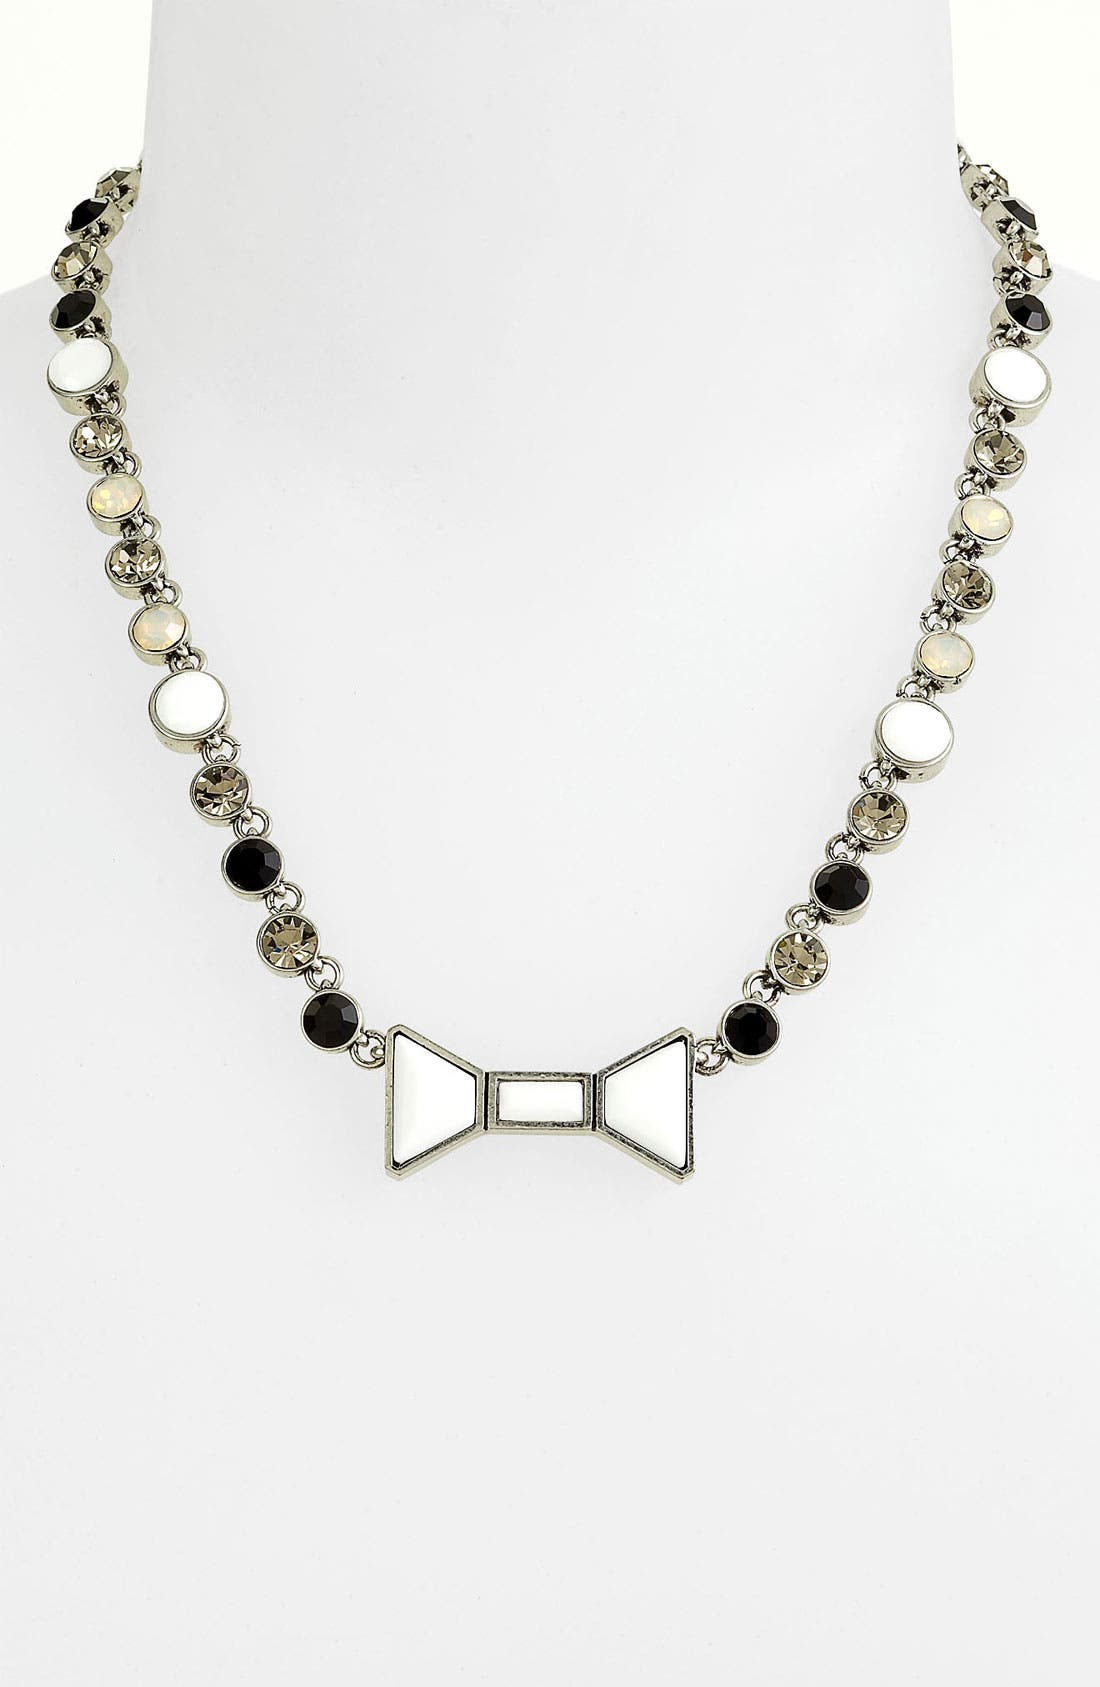 Main Image - MARC BY MARC JACOBS 'Polka Dot' Bow Collar Necklace